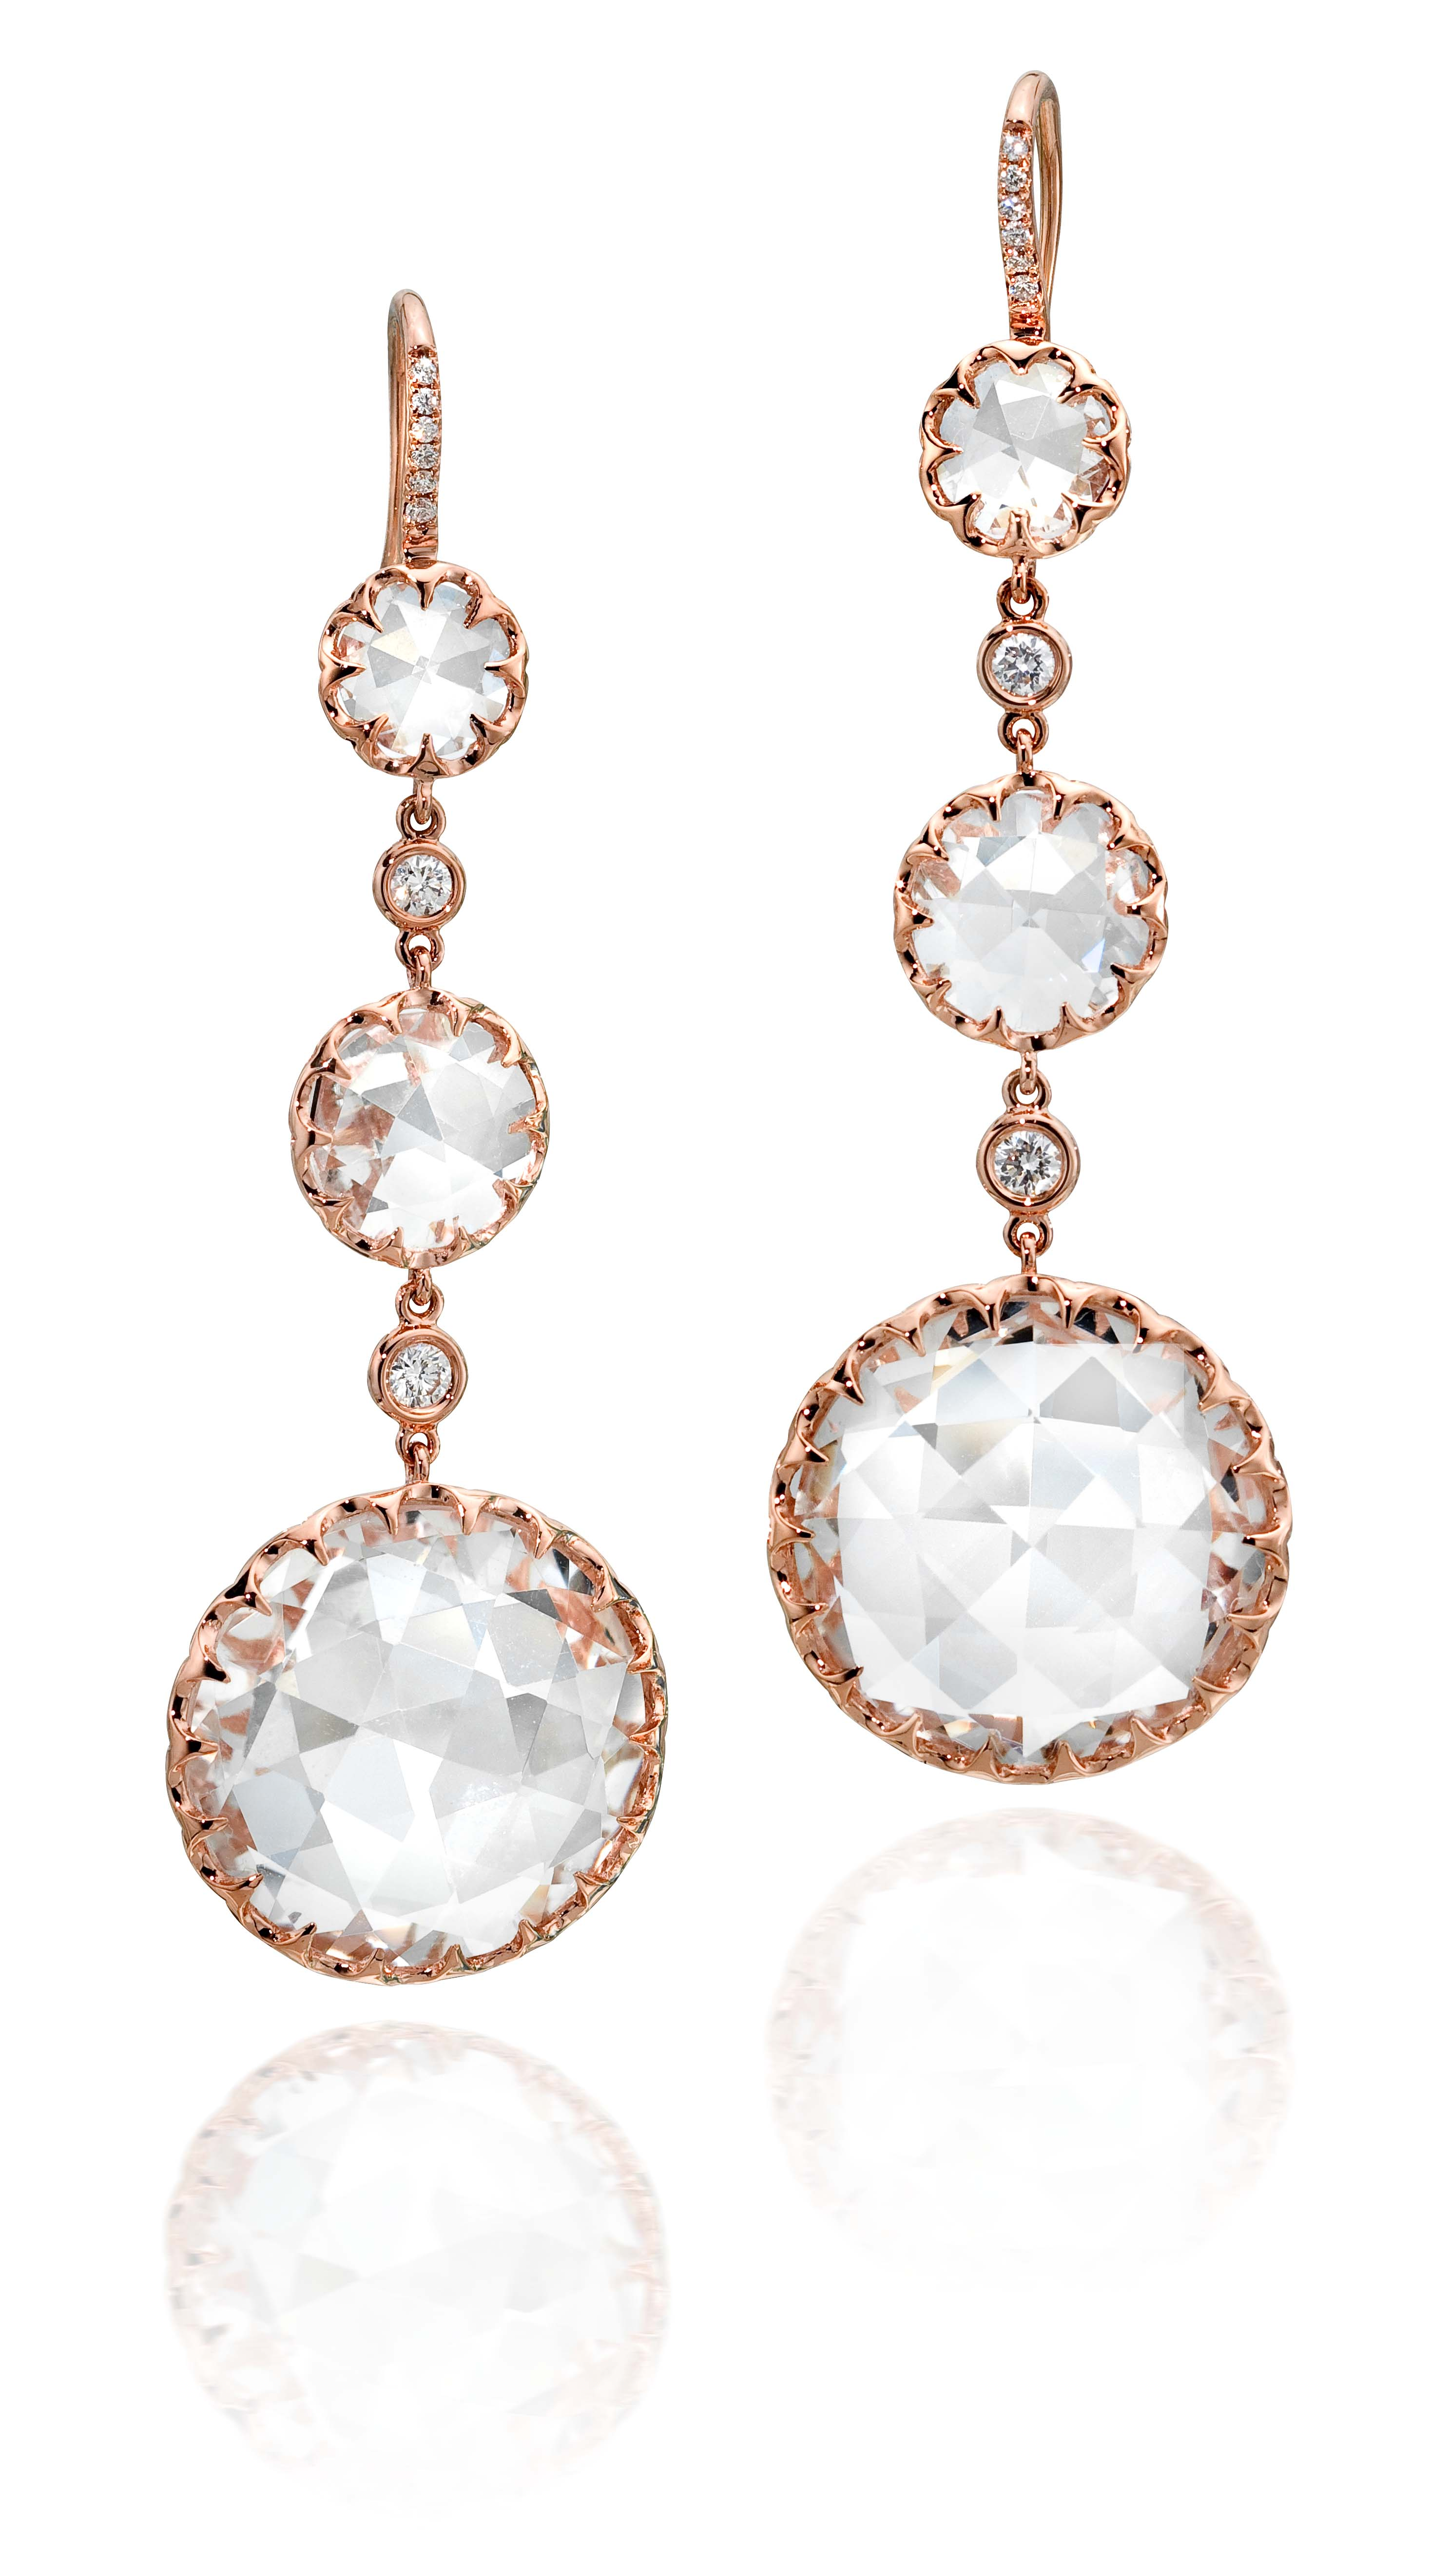 E0258 Long Rose Gold Round Rock Crystal Drop Earrings On Pave Diamond French Wire